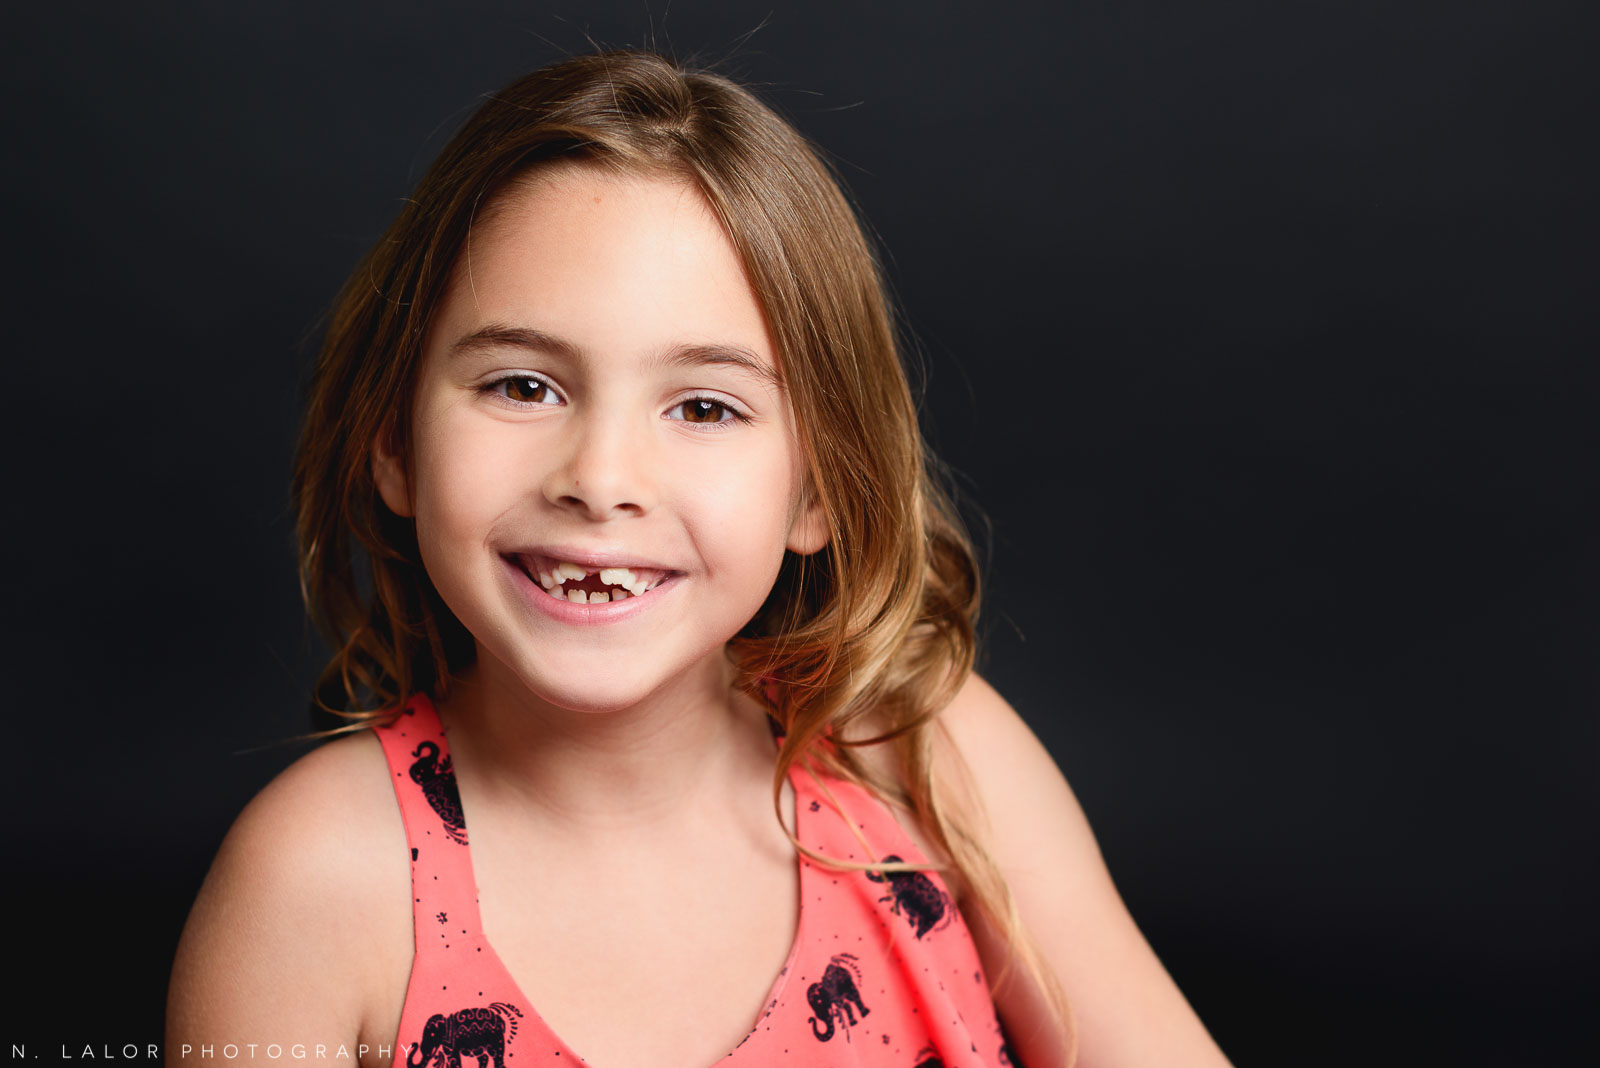 The beauty shot. Editorial studio portrait of 6-year old girl by N. Lalor Photography in Greenwich, Connecticut.